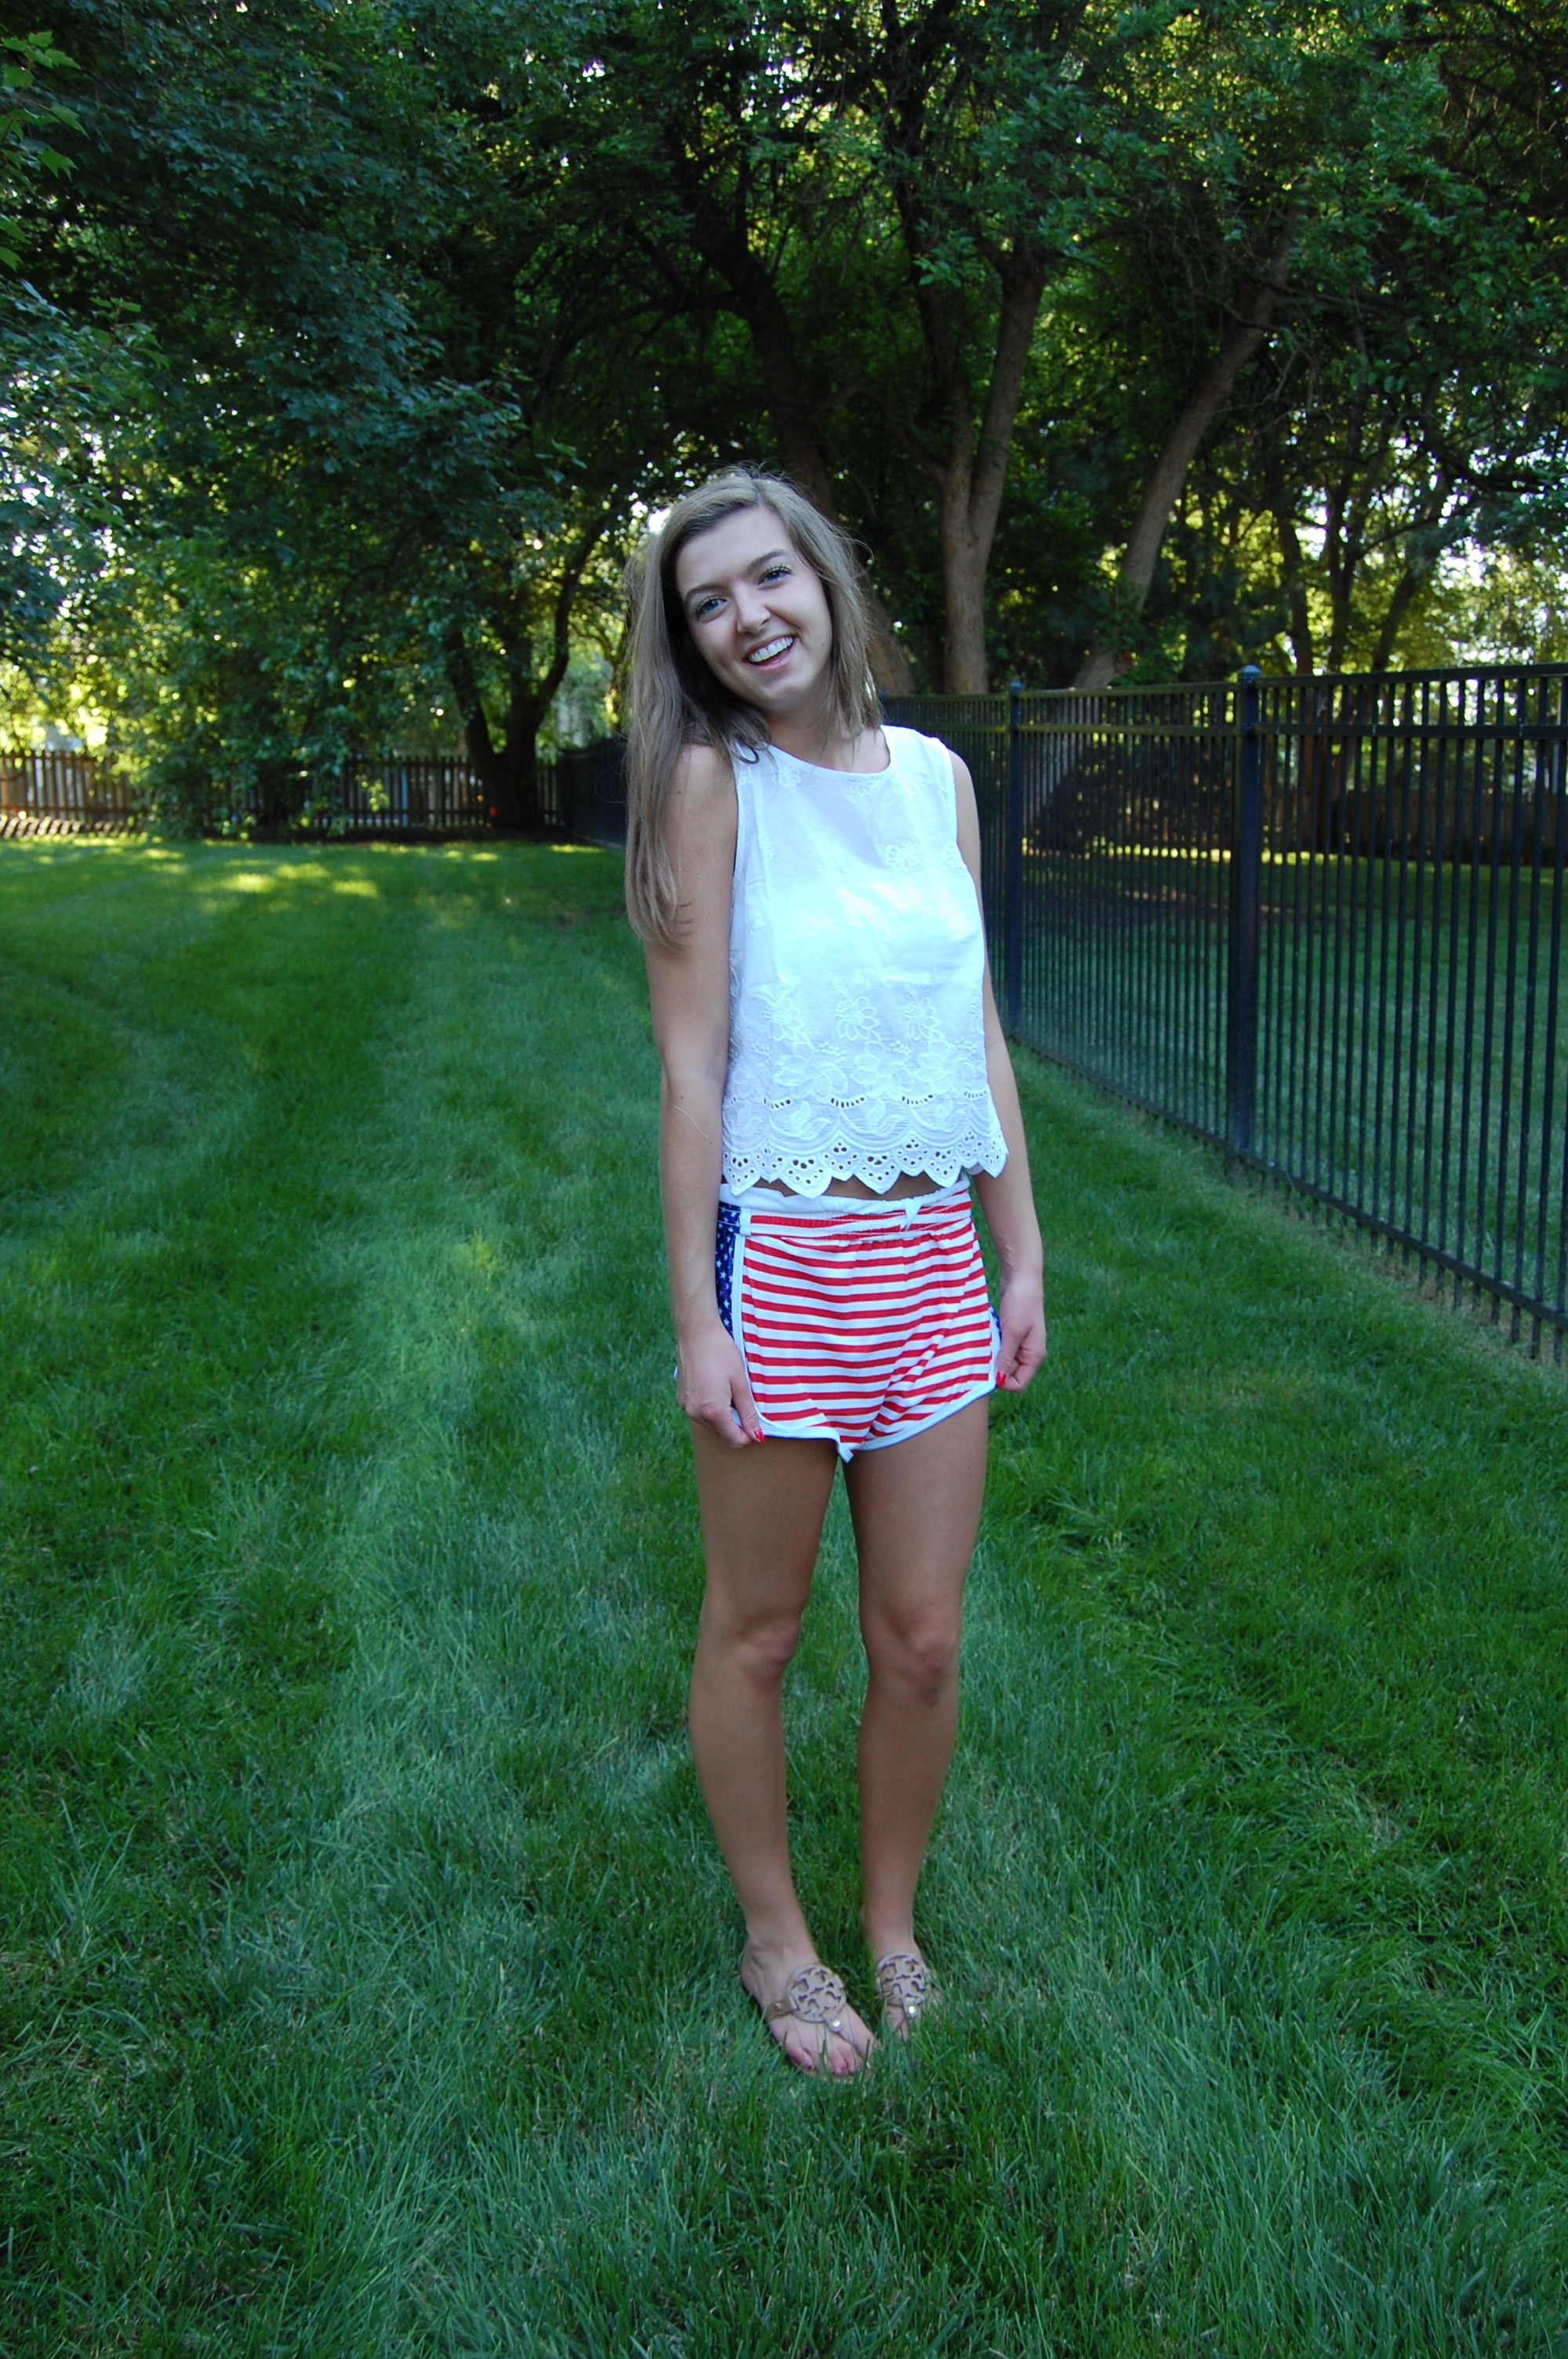 Krass & Co. Sam's red white and blue america shorts